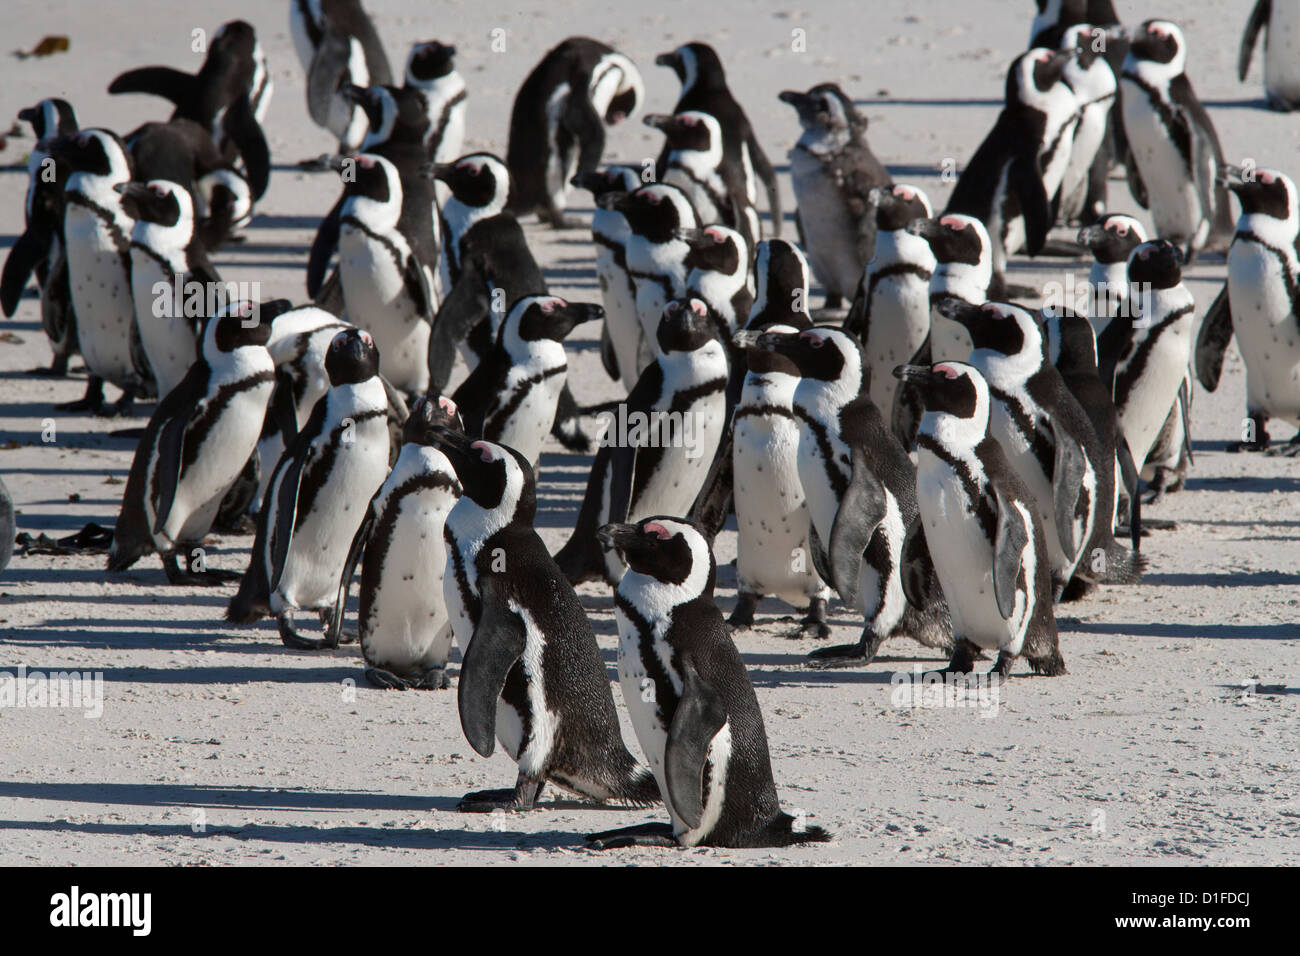 African penguins (Spheniscus demersus), Table Mountain National Park, Cape Town, South Africa, Africa - Stock Image